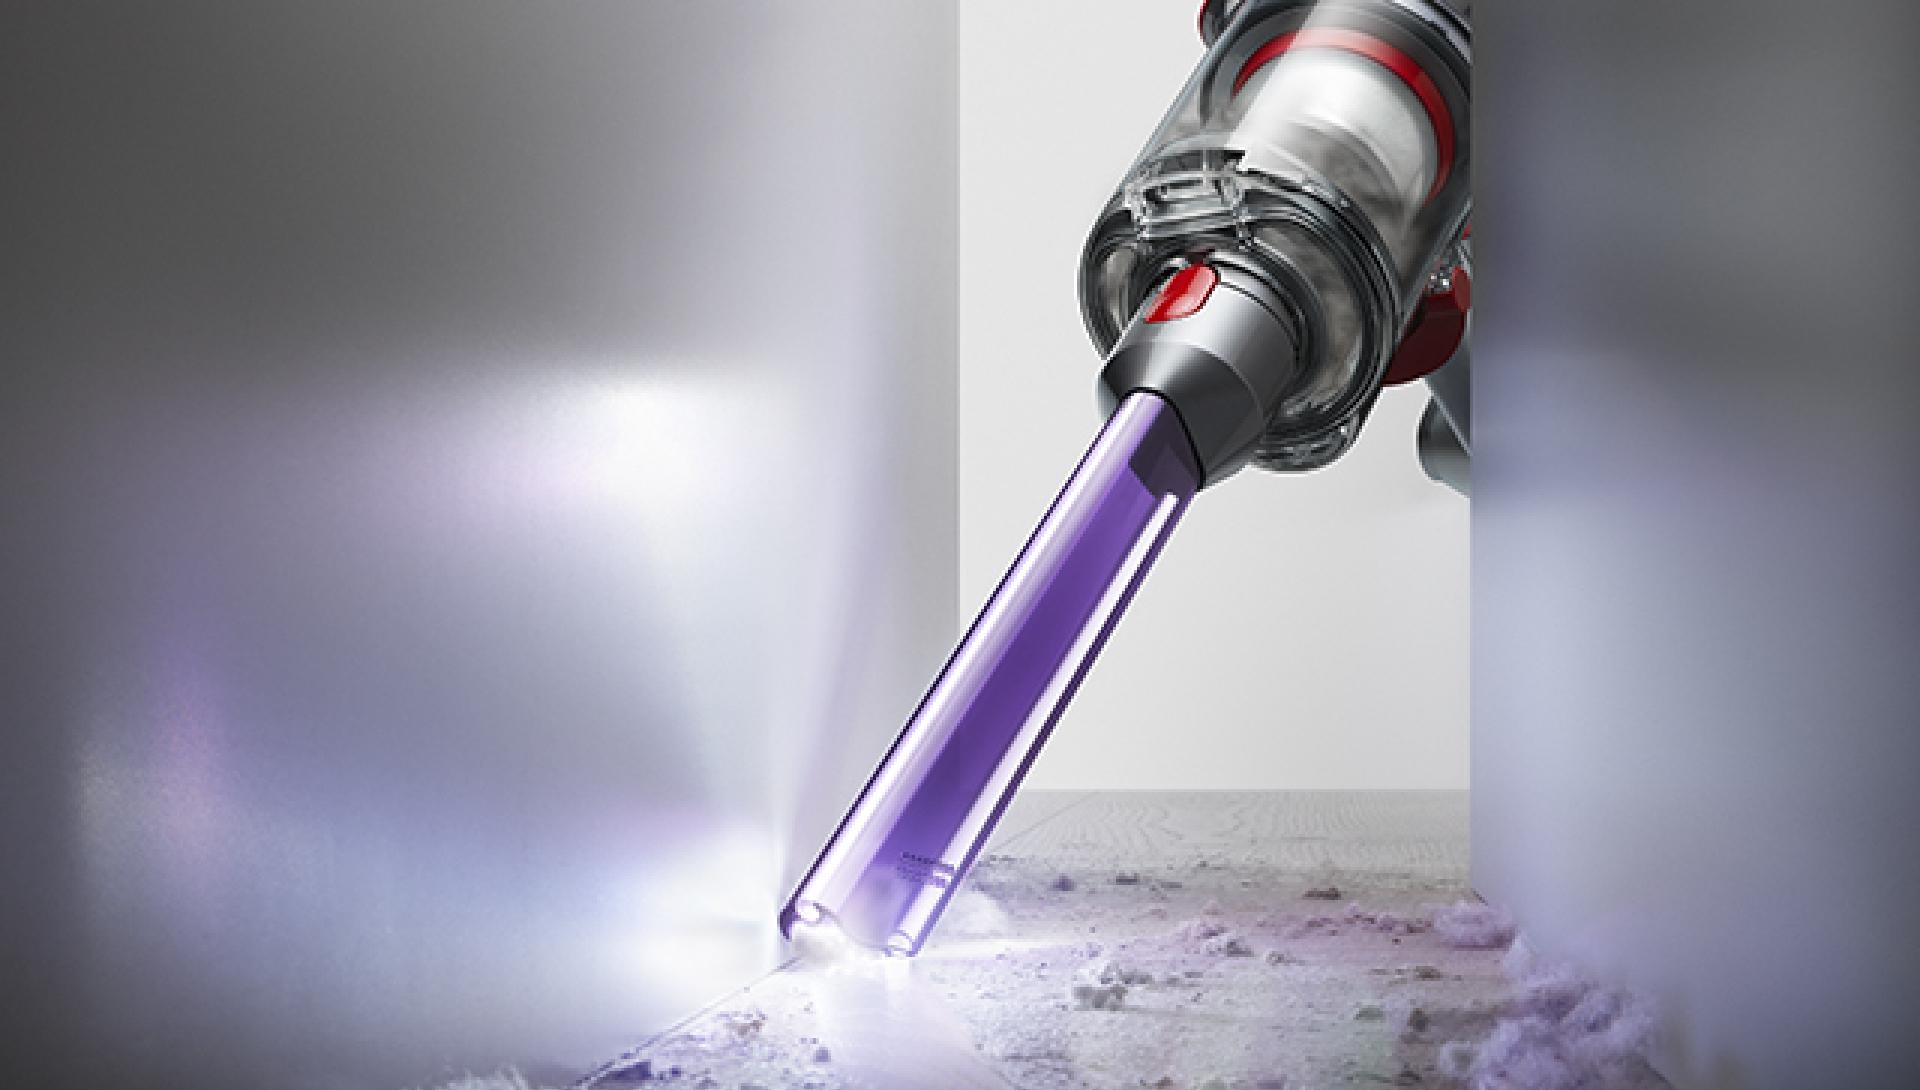 Dyson Micro 1.5kg vacuum cleaning a worktop.